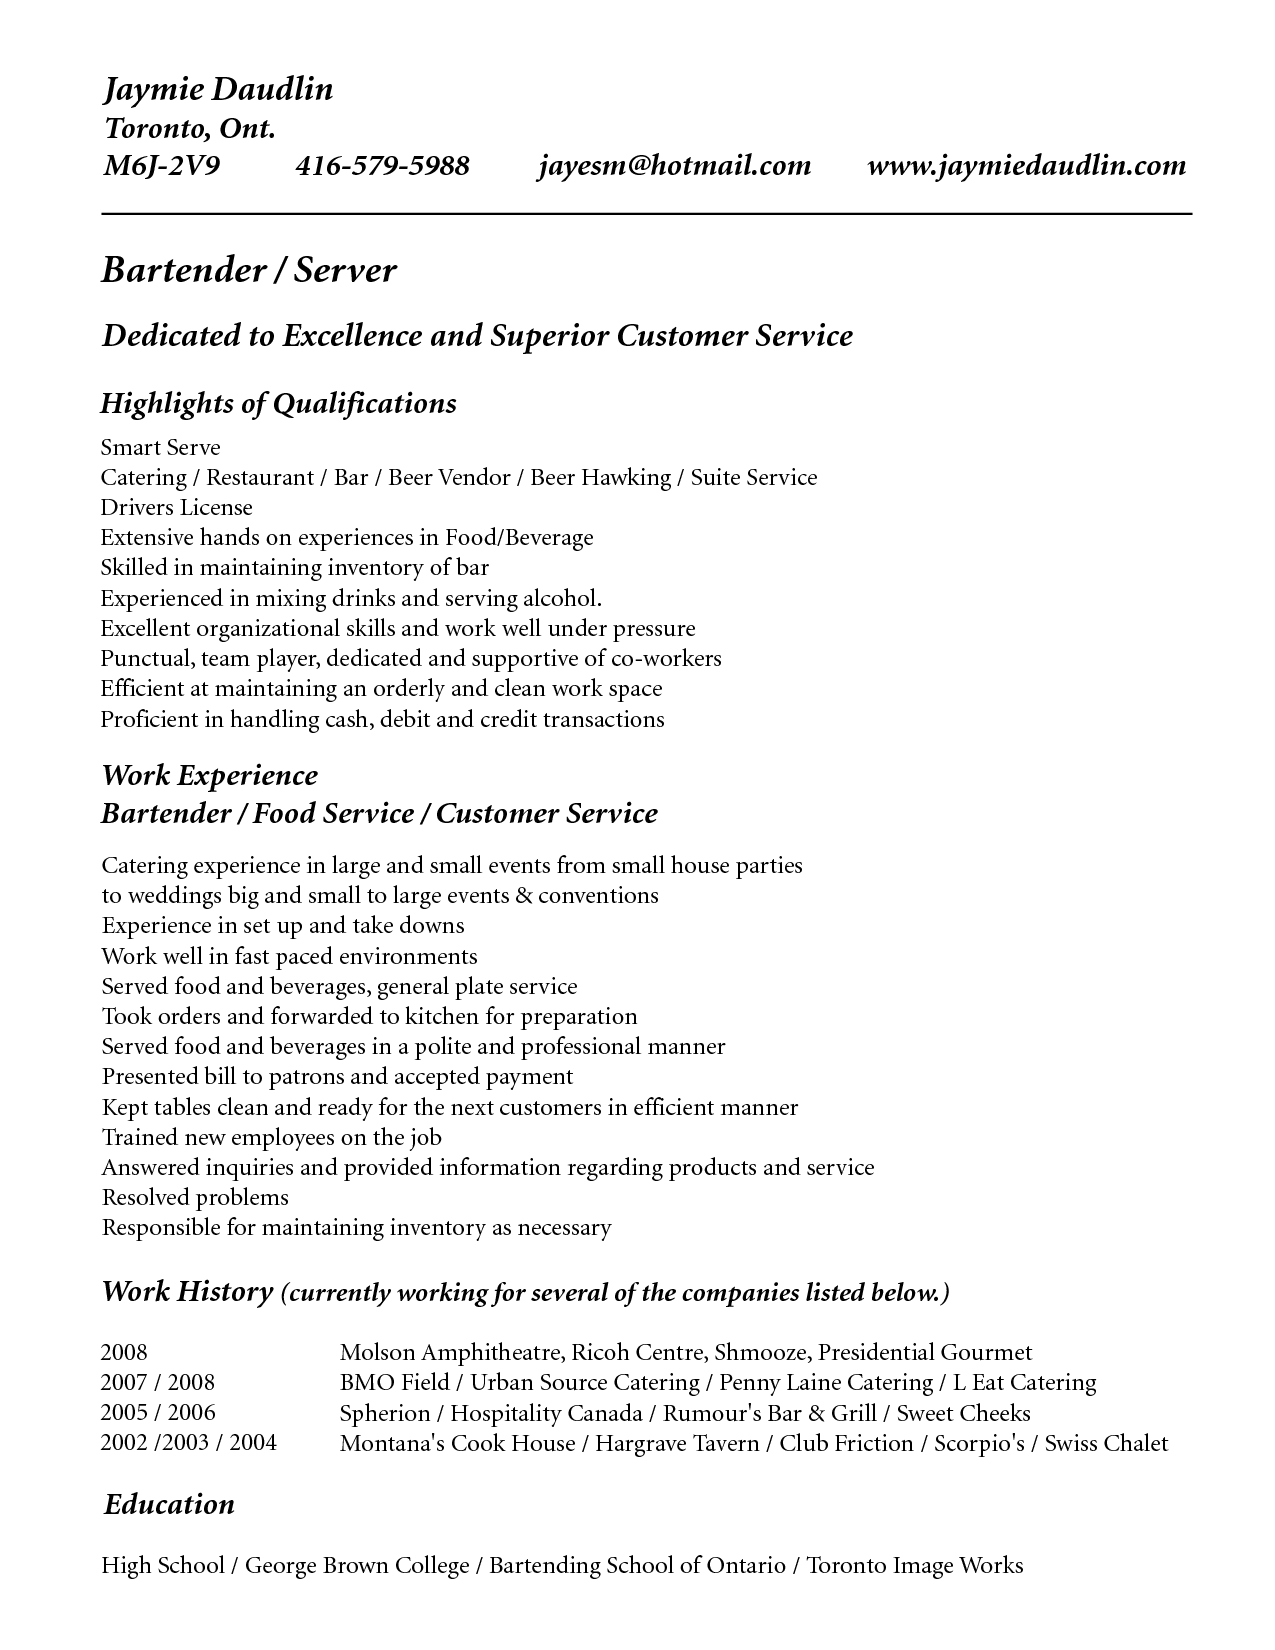 Superior Server Bartender Resume Regarding Bartender Description For Resume